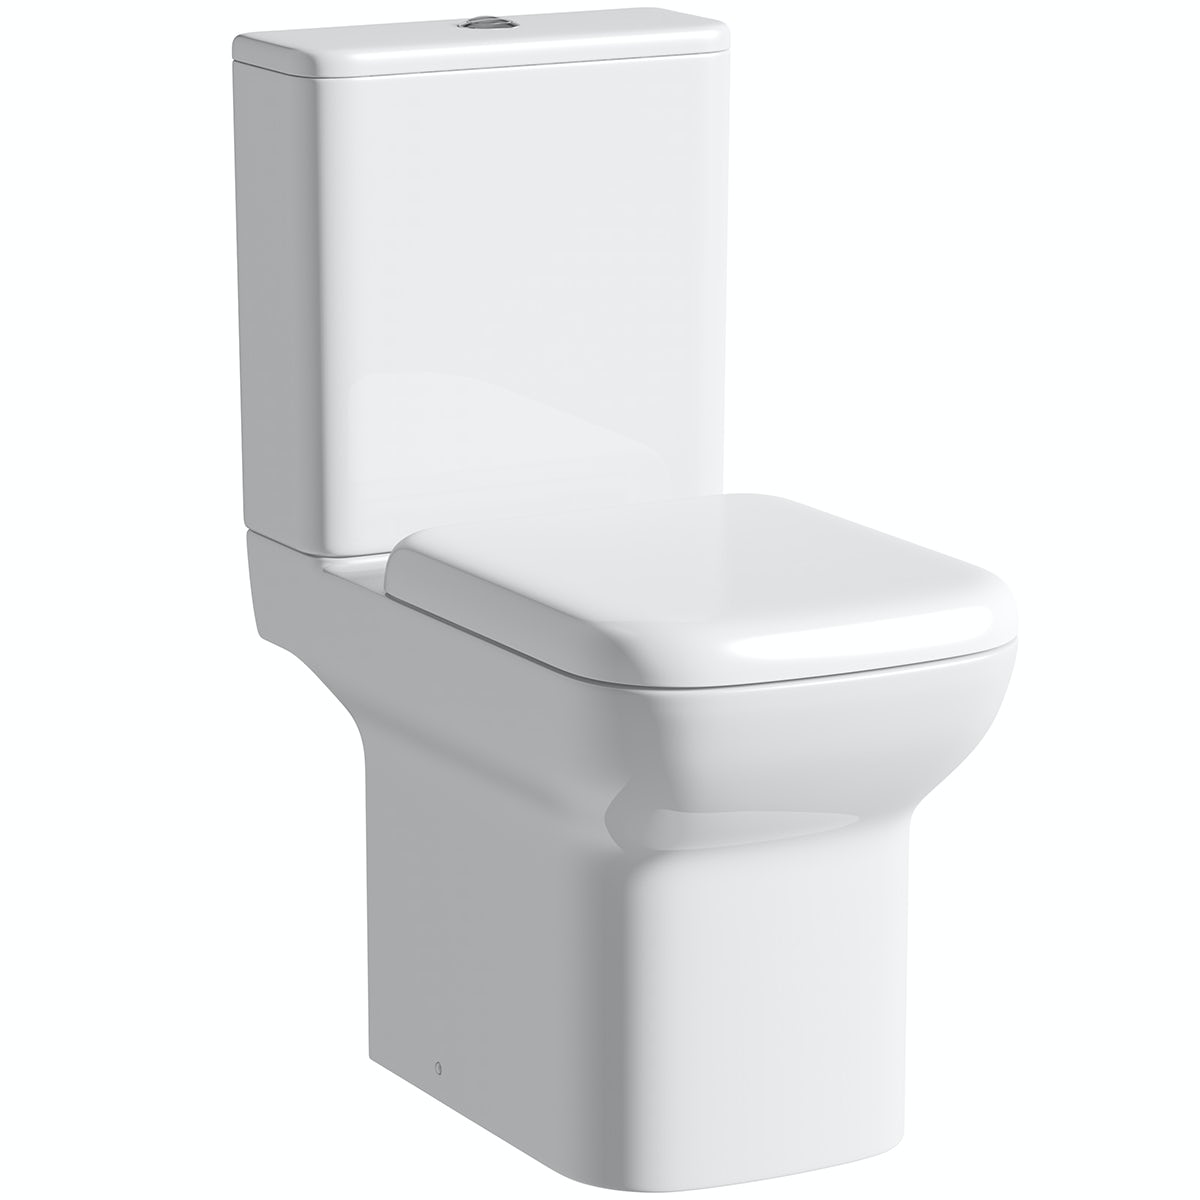 Orchard Lune rimless close coupled toilet with soft close seat